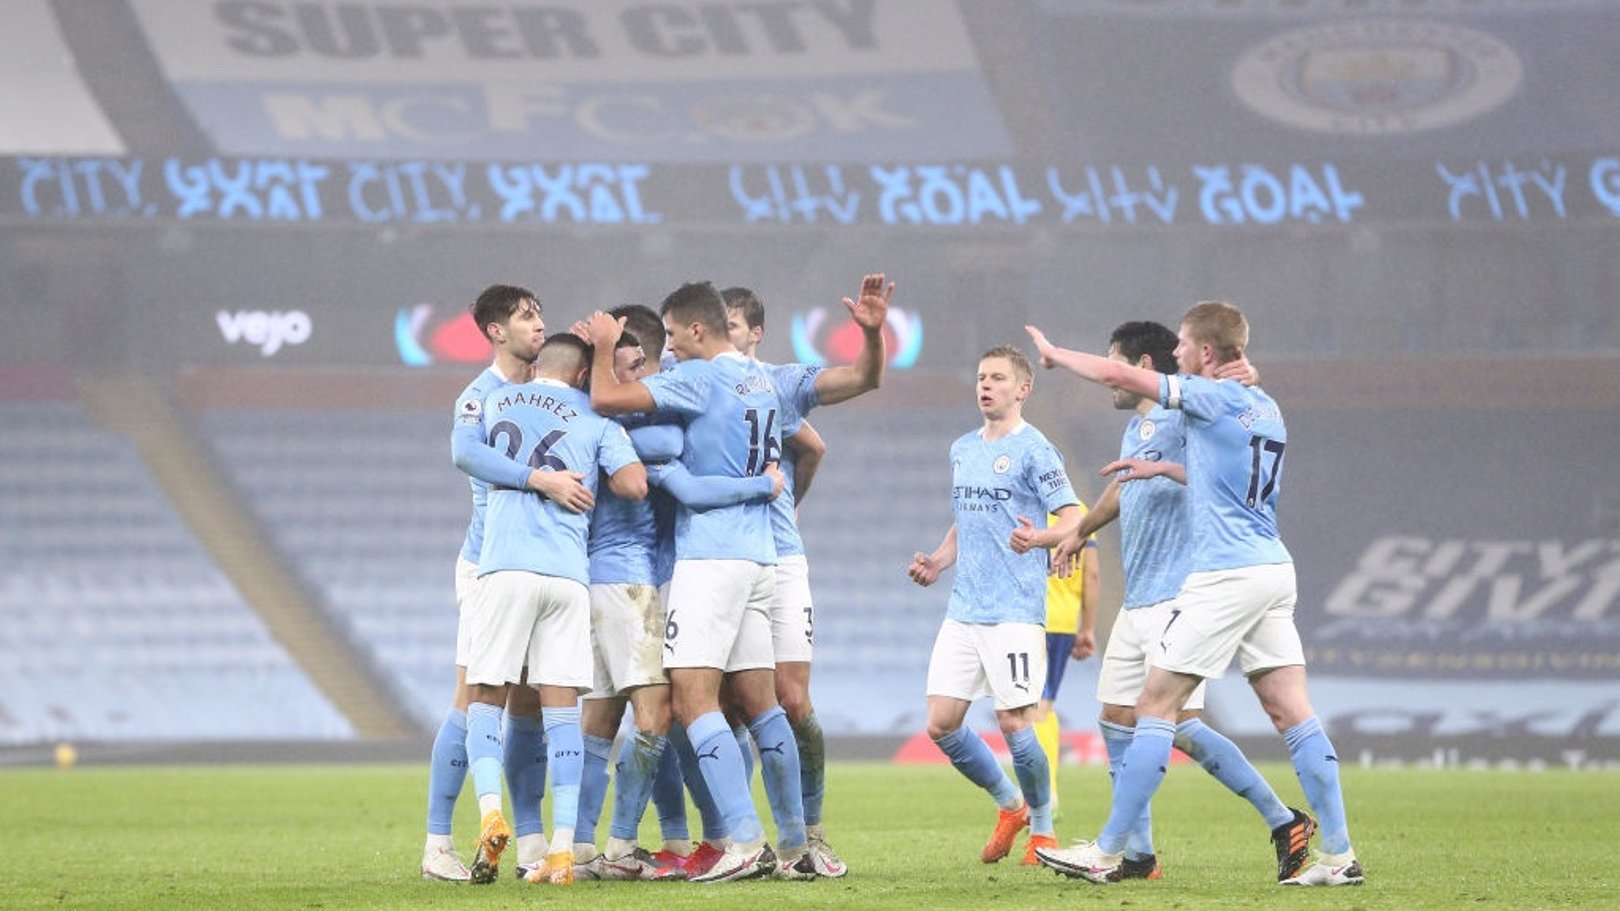 GROUP HUG: The players share the love after Foden's opener.